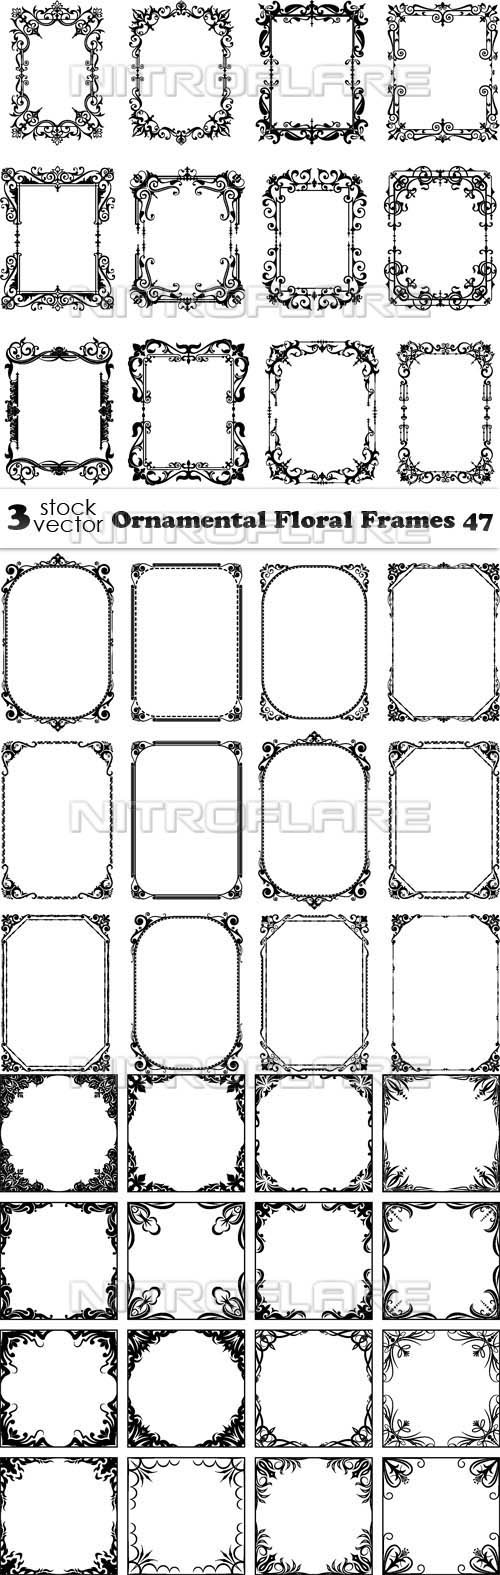 Vectors - Ornamental Floral Frames 47